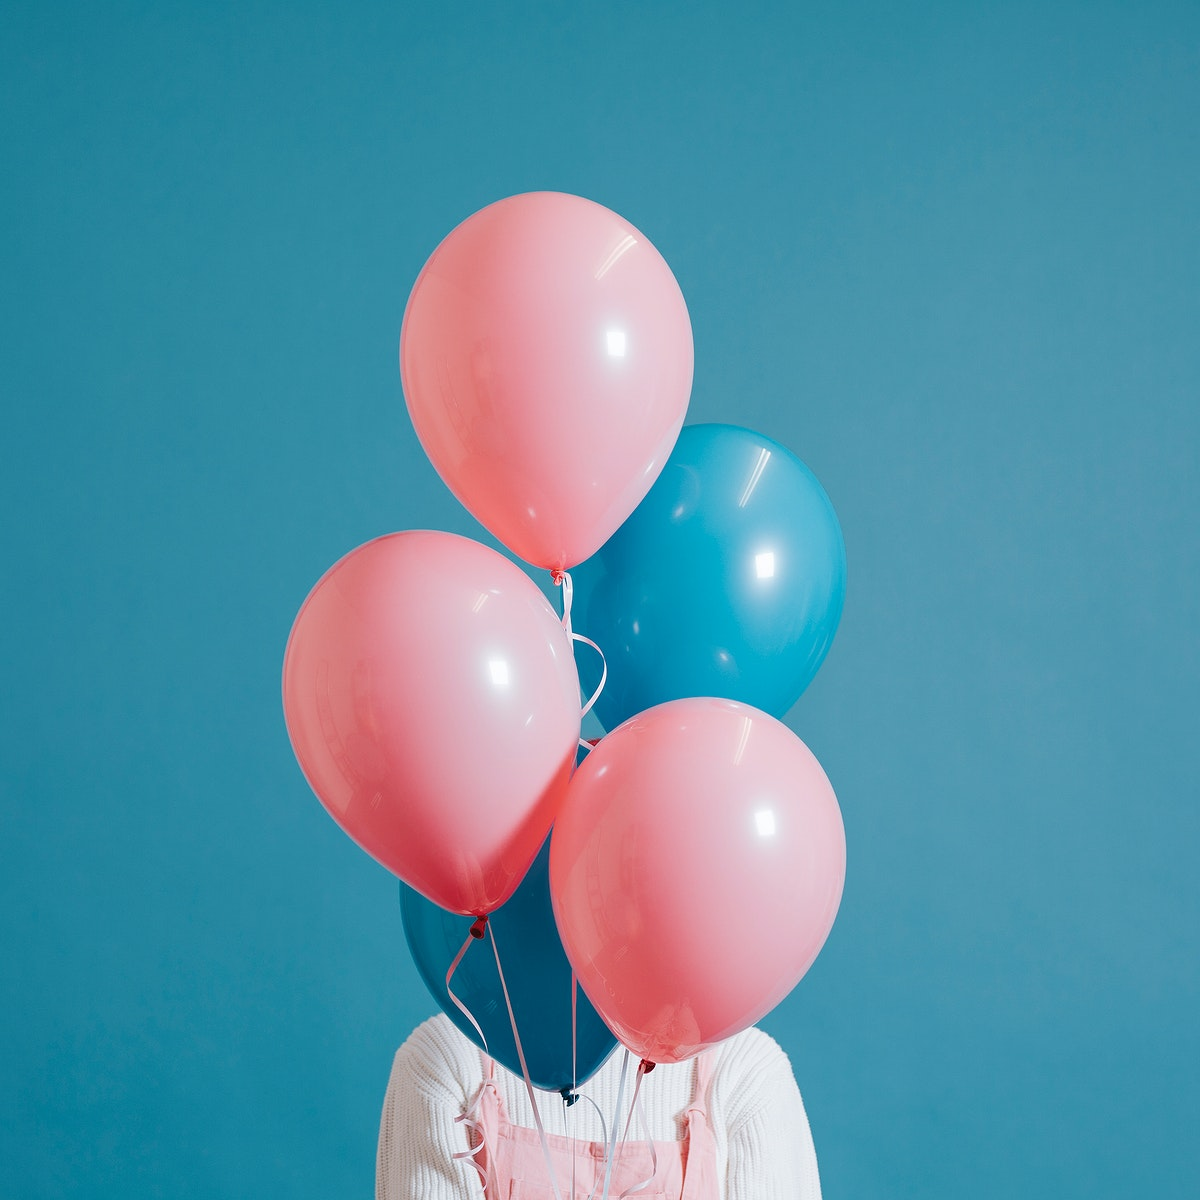 Woman with pink and blue balloons